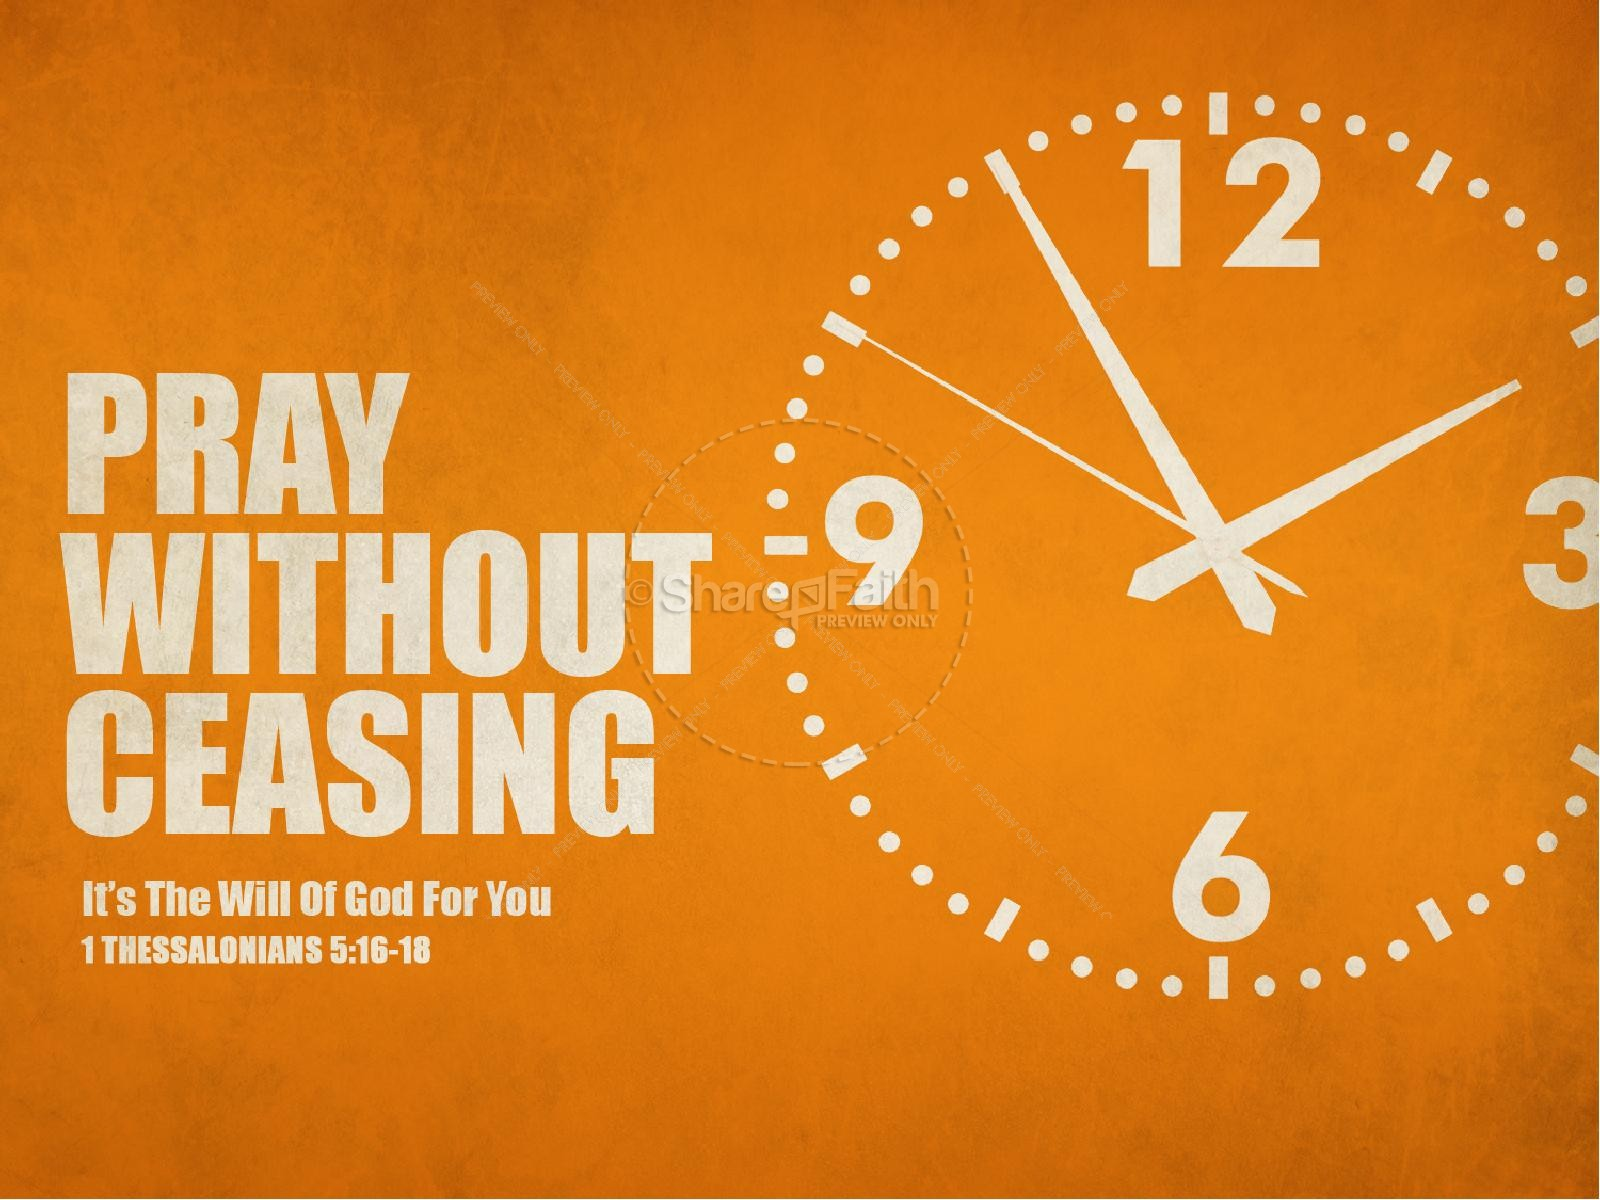 pray without ceasing sermon powerpoint template | powerpoint sermons, Modern powerpoint